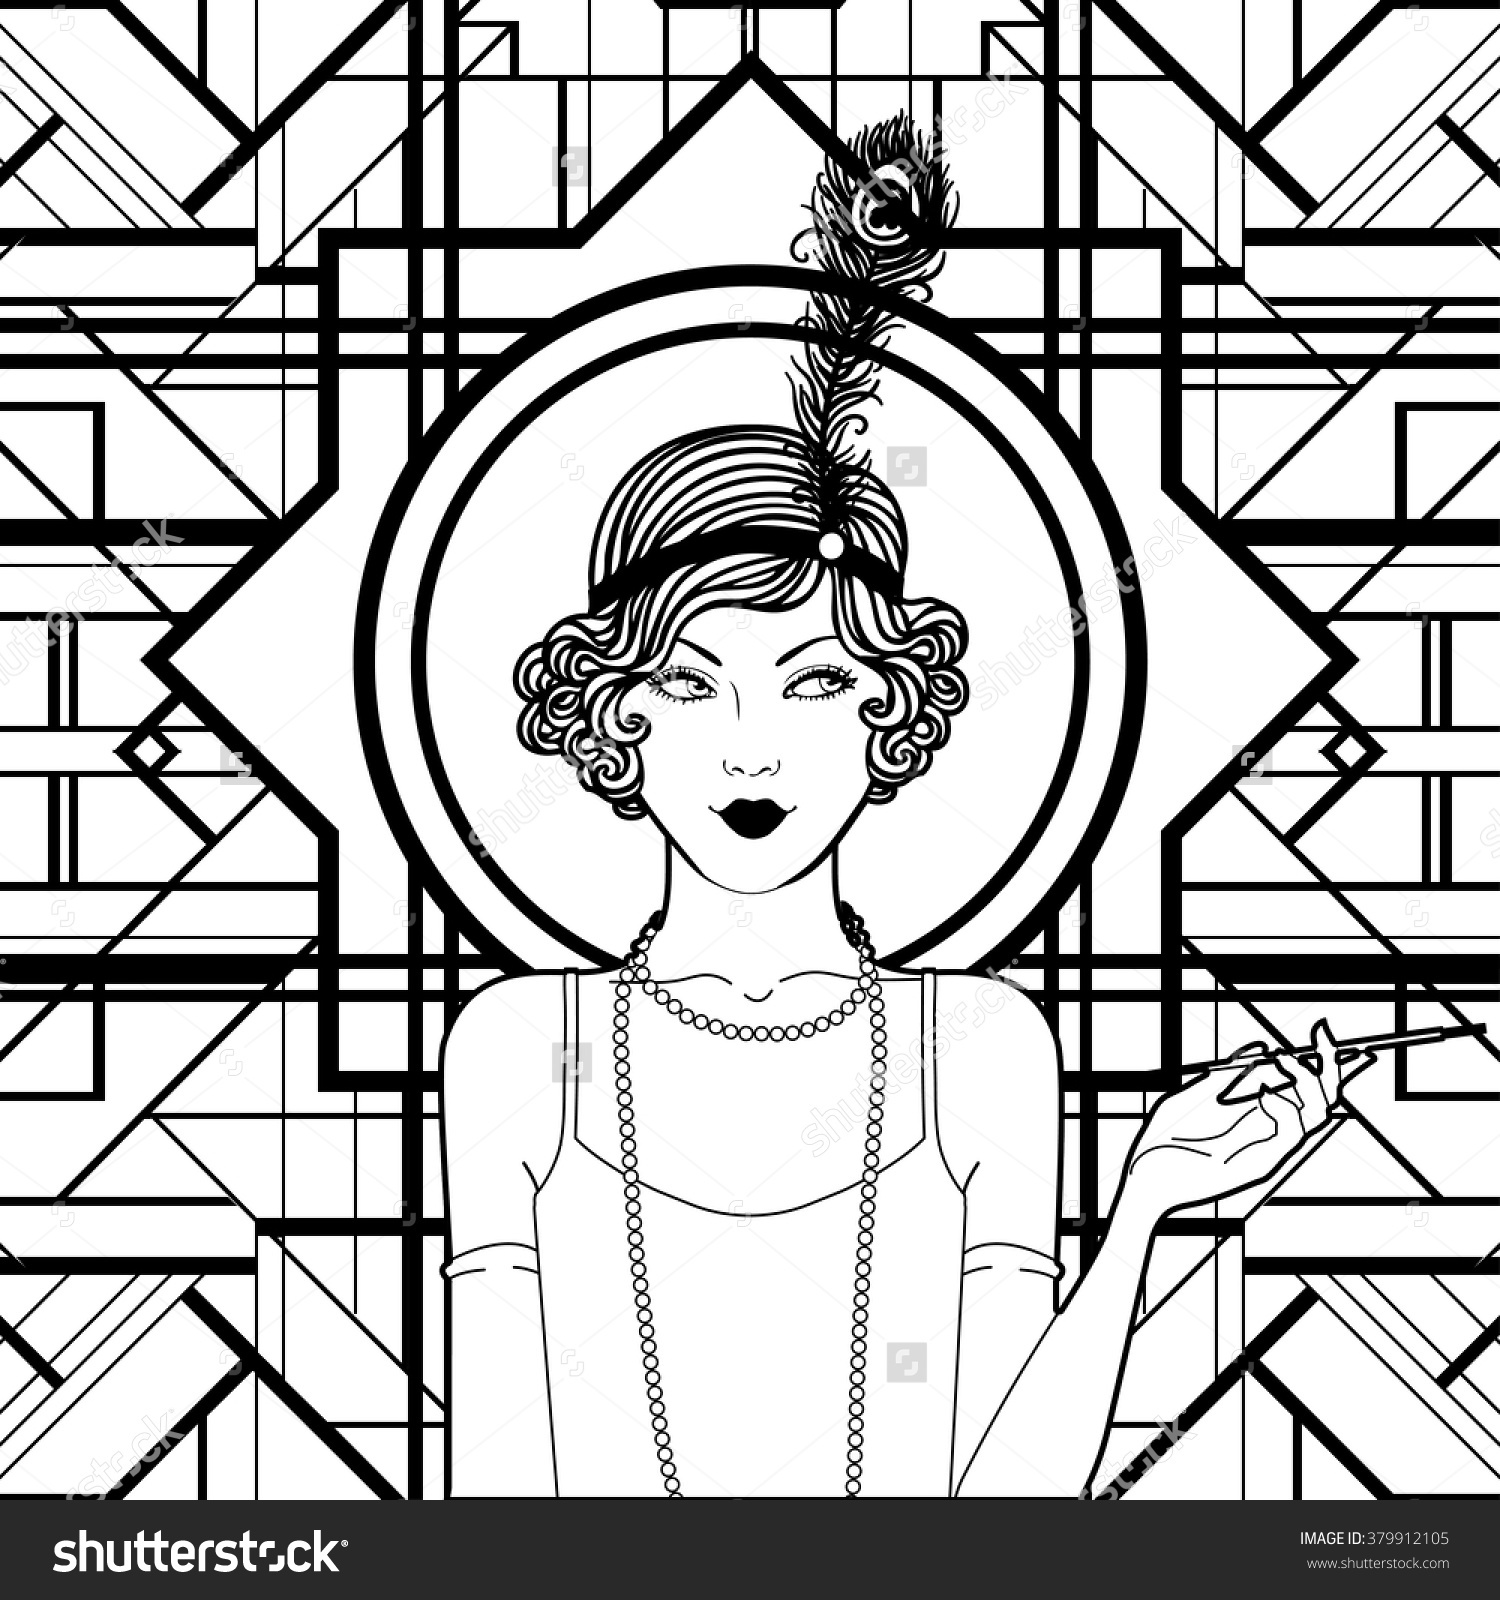 Download Retro Coloring For Free